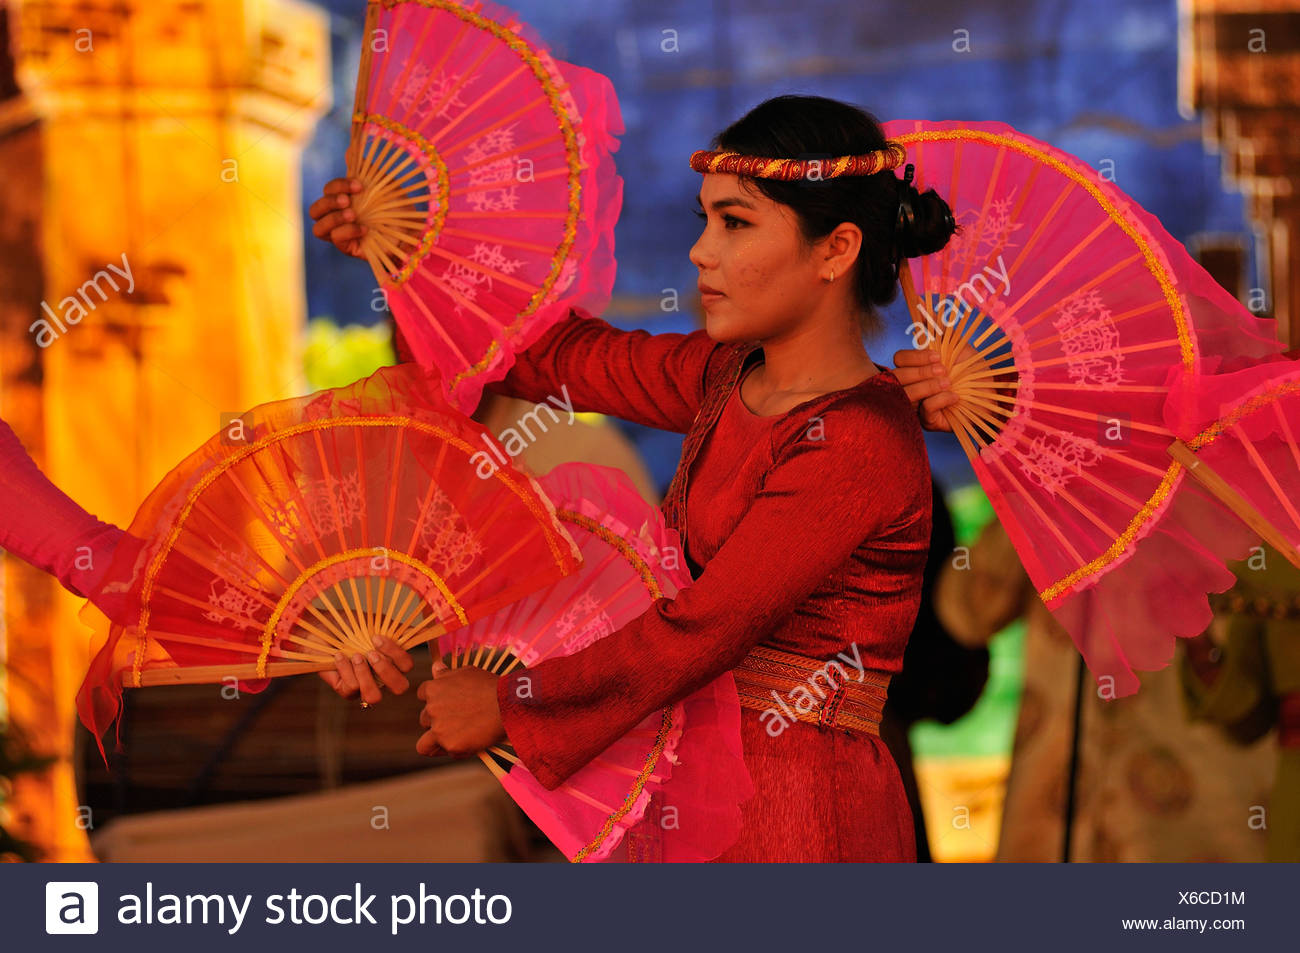 Dancer at the largest and most important religious festival of the Cham, Po Nagar Temple, Vietnam, Southeast Asia - Stock Image